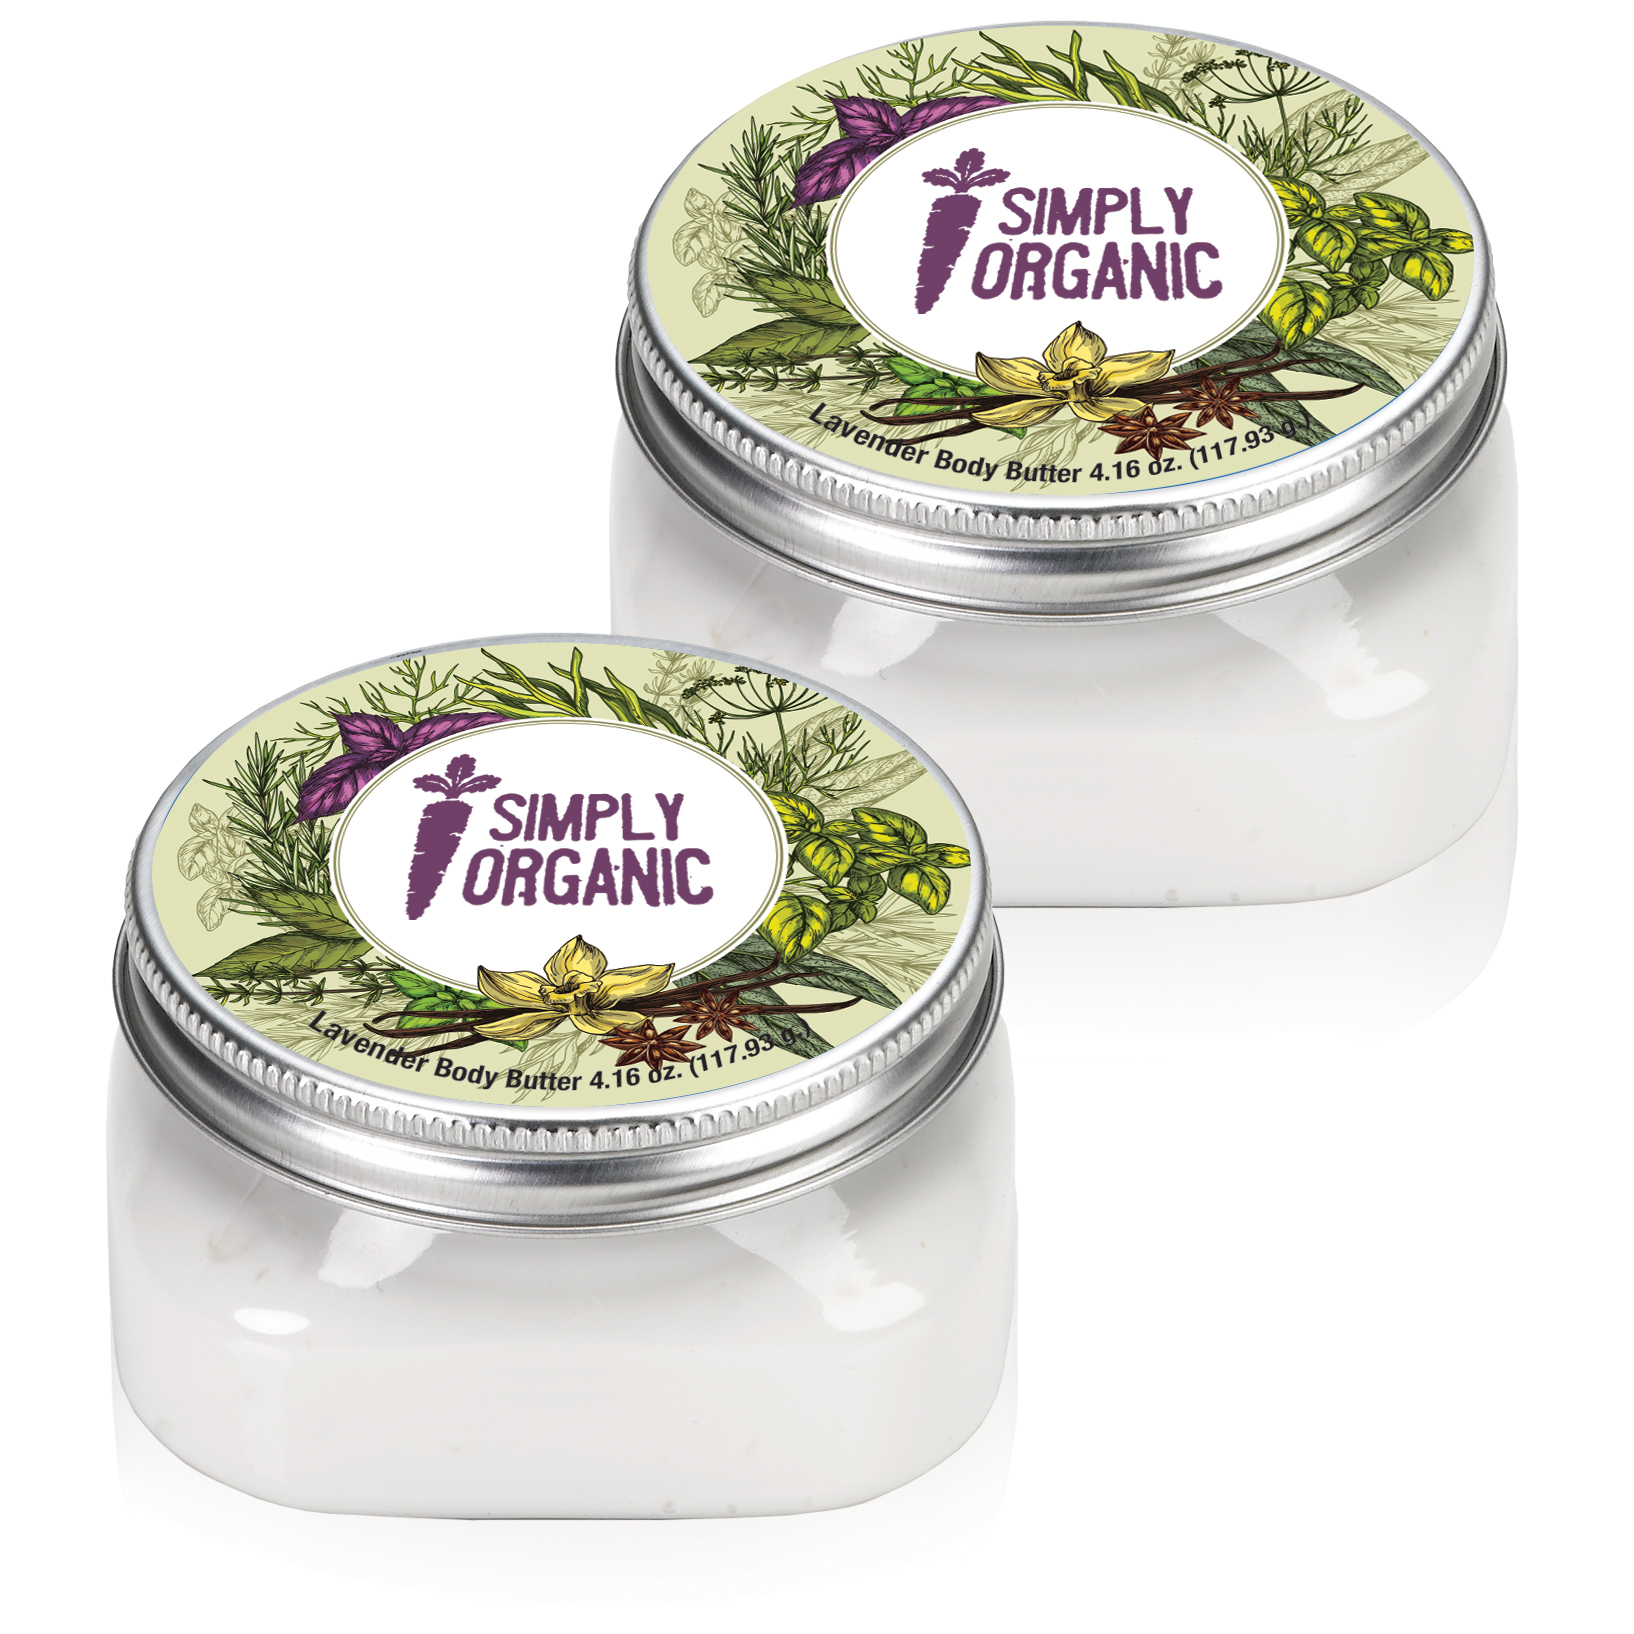 Body Butter in Square Jar, 4oz., Full Color Imprint